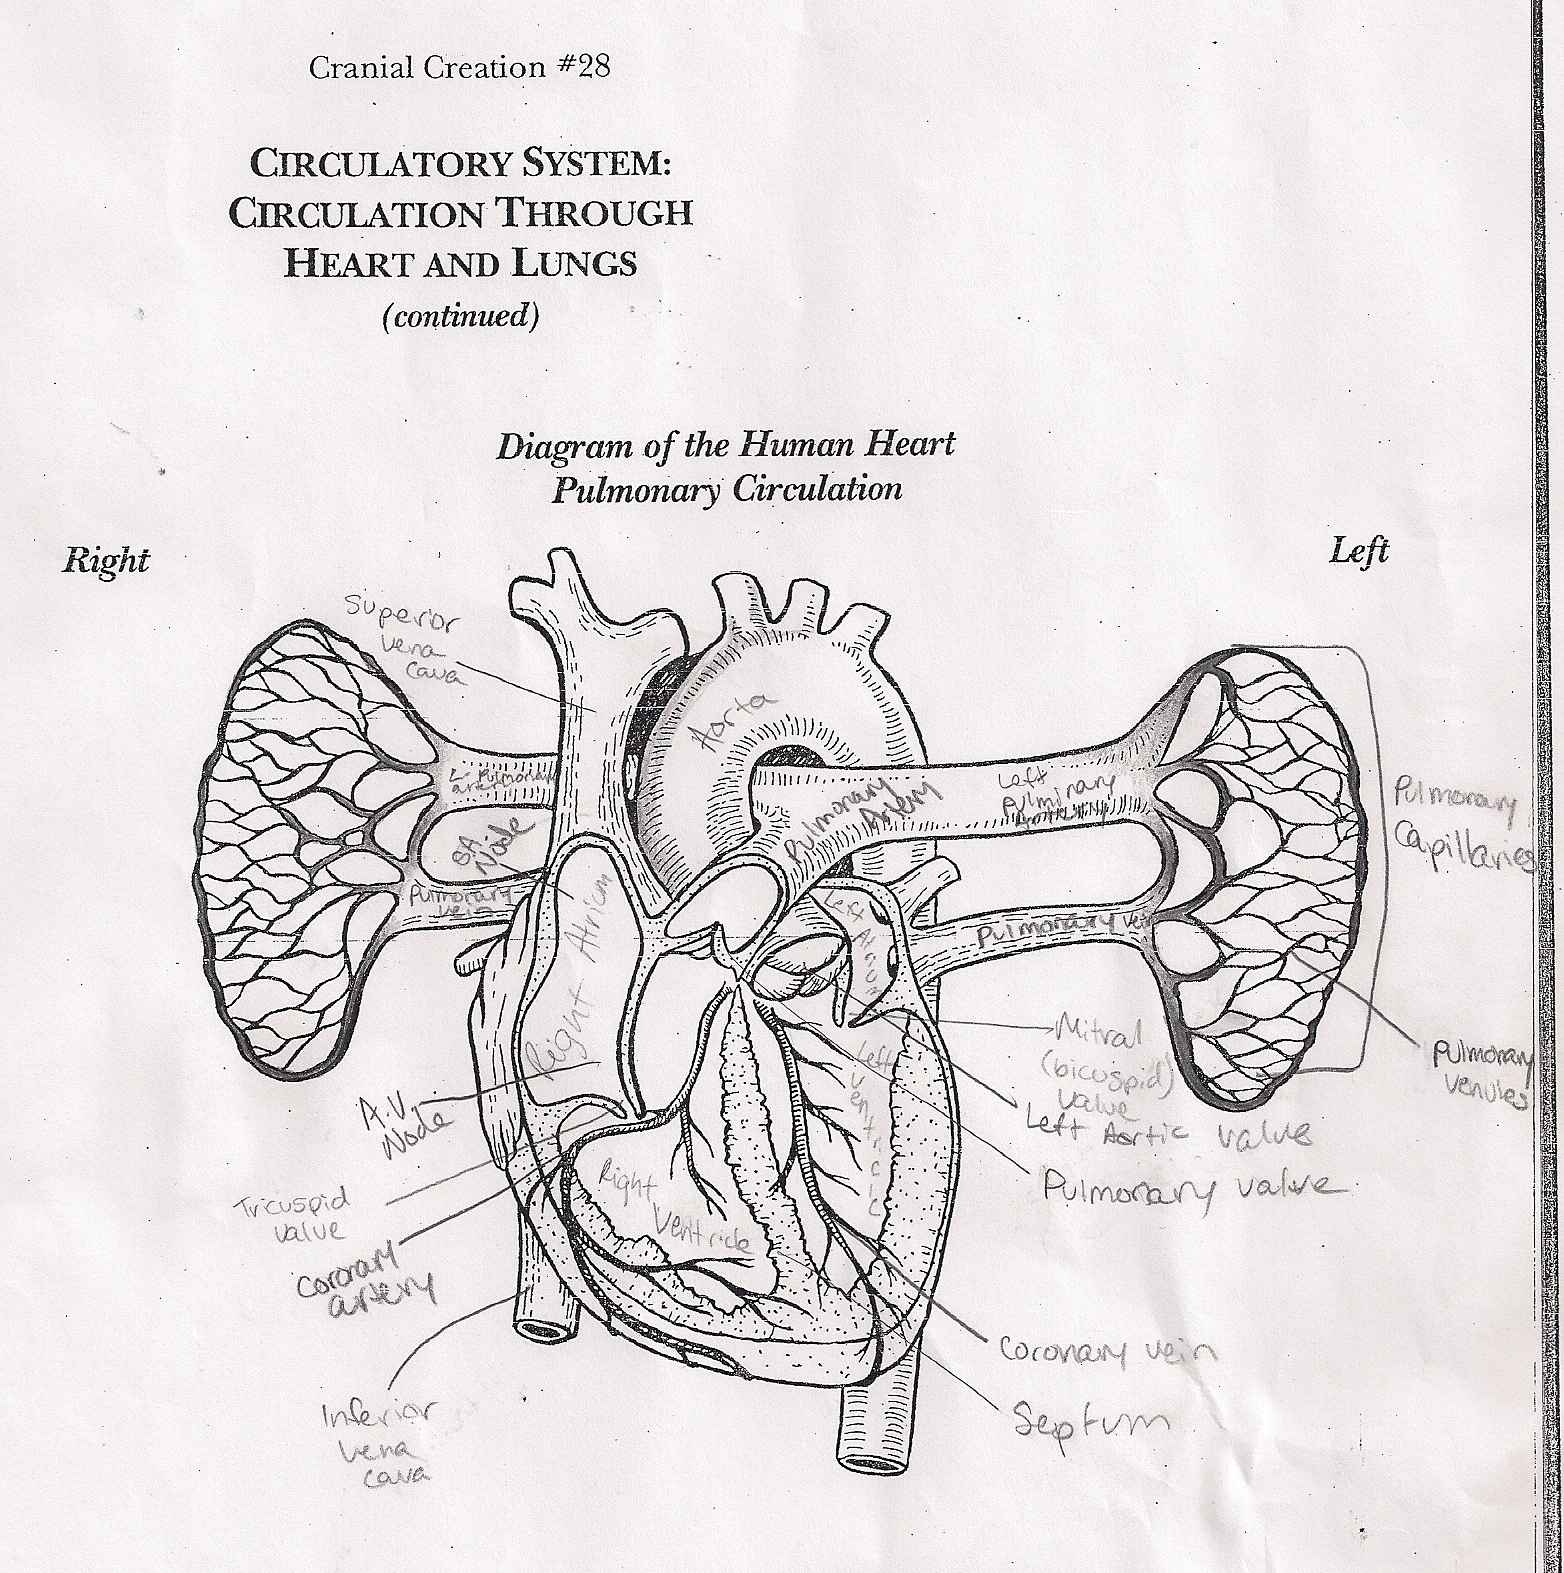 Anatomy and physiology its going tibia okay heart anatomy before we began the dissection we filled out a heart diagram to become familiarized with heart anatomy ccuart Images